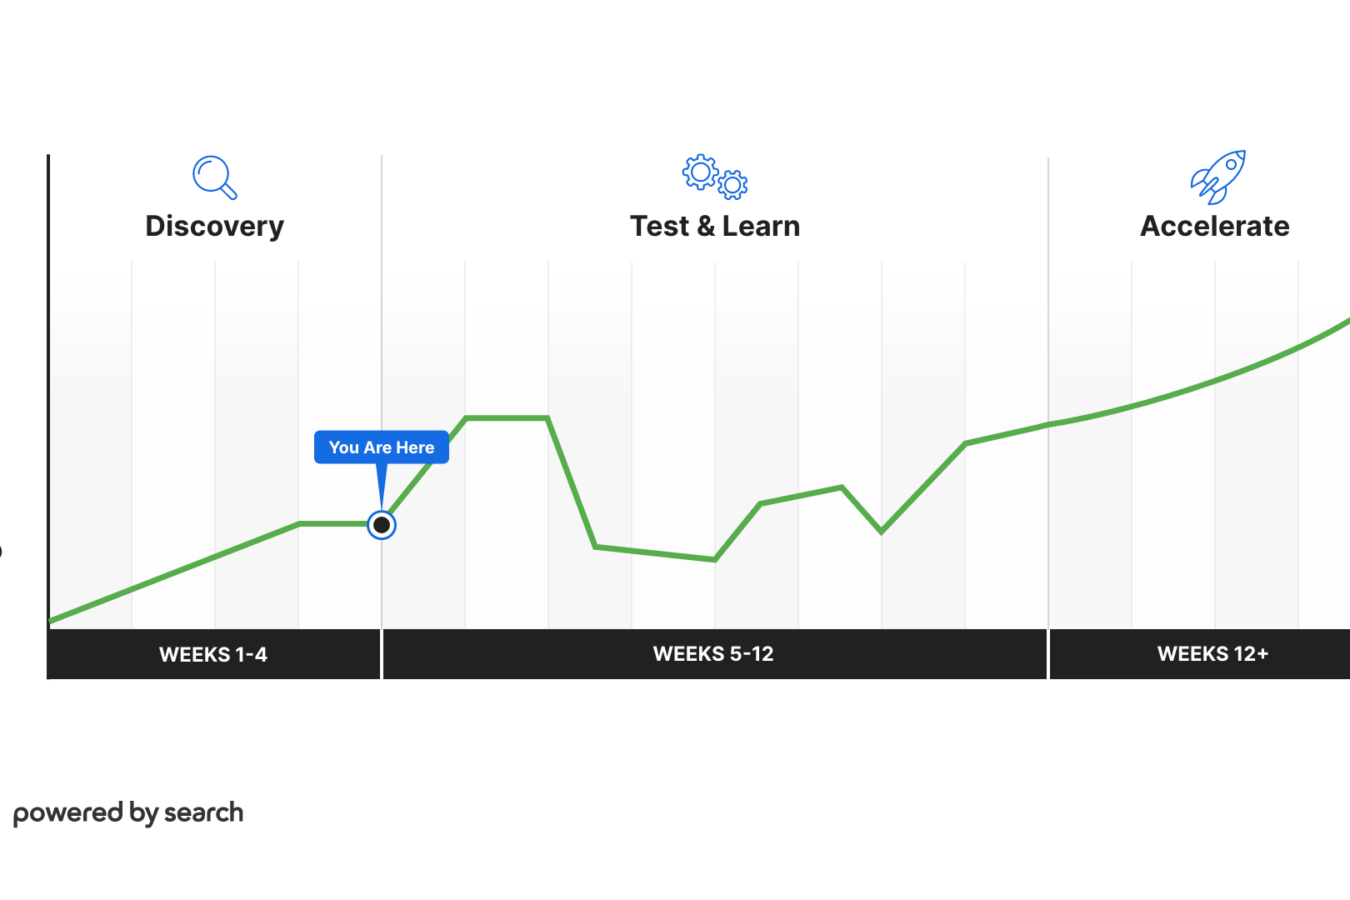 Chart showing that a client is in the test and learn phase of onboarding